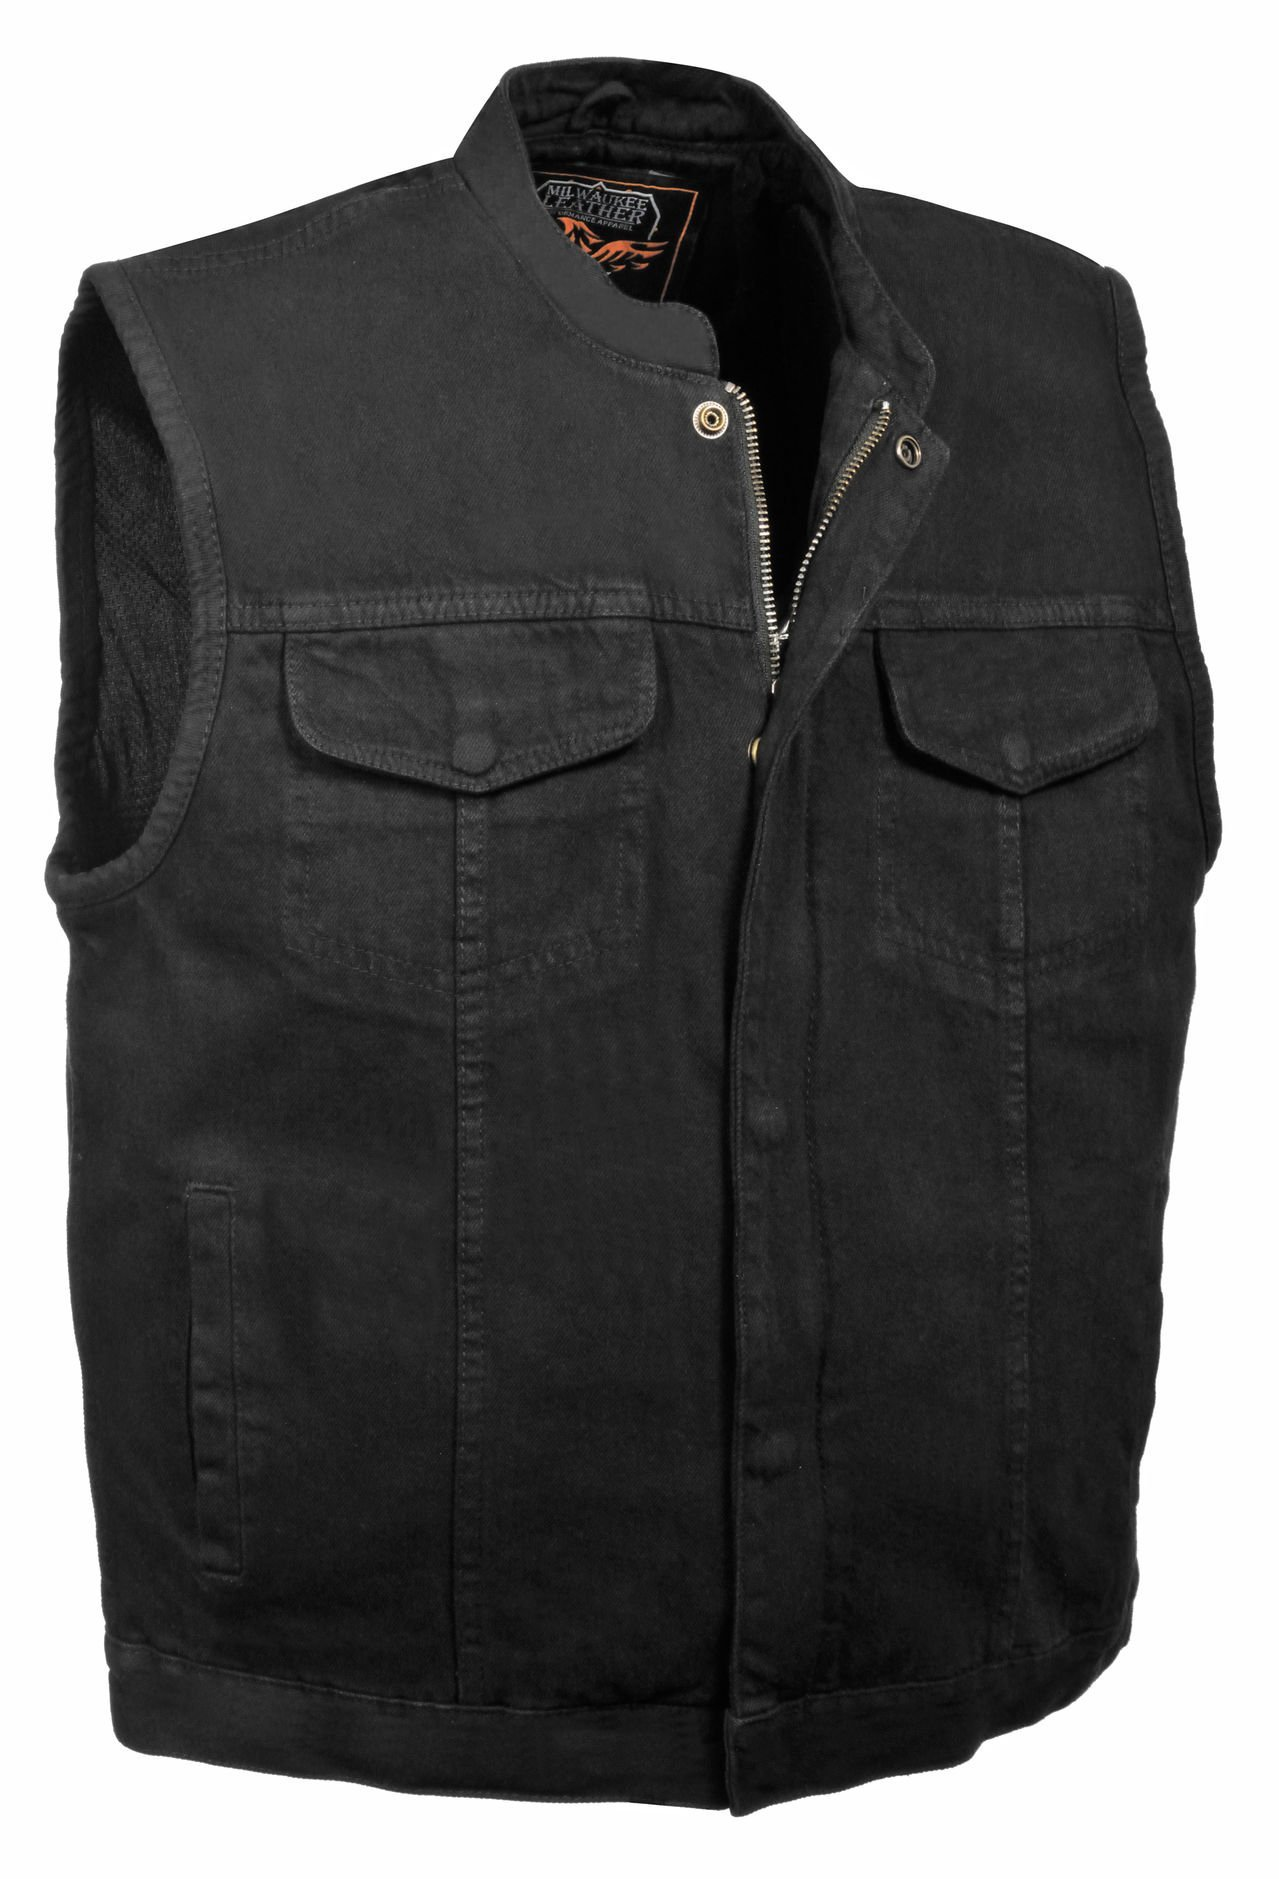 Milwaukee Leather Men's Concealed Snap Denim Club Style Vest w/Hidden Zipper (Black, XL)